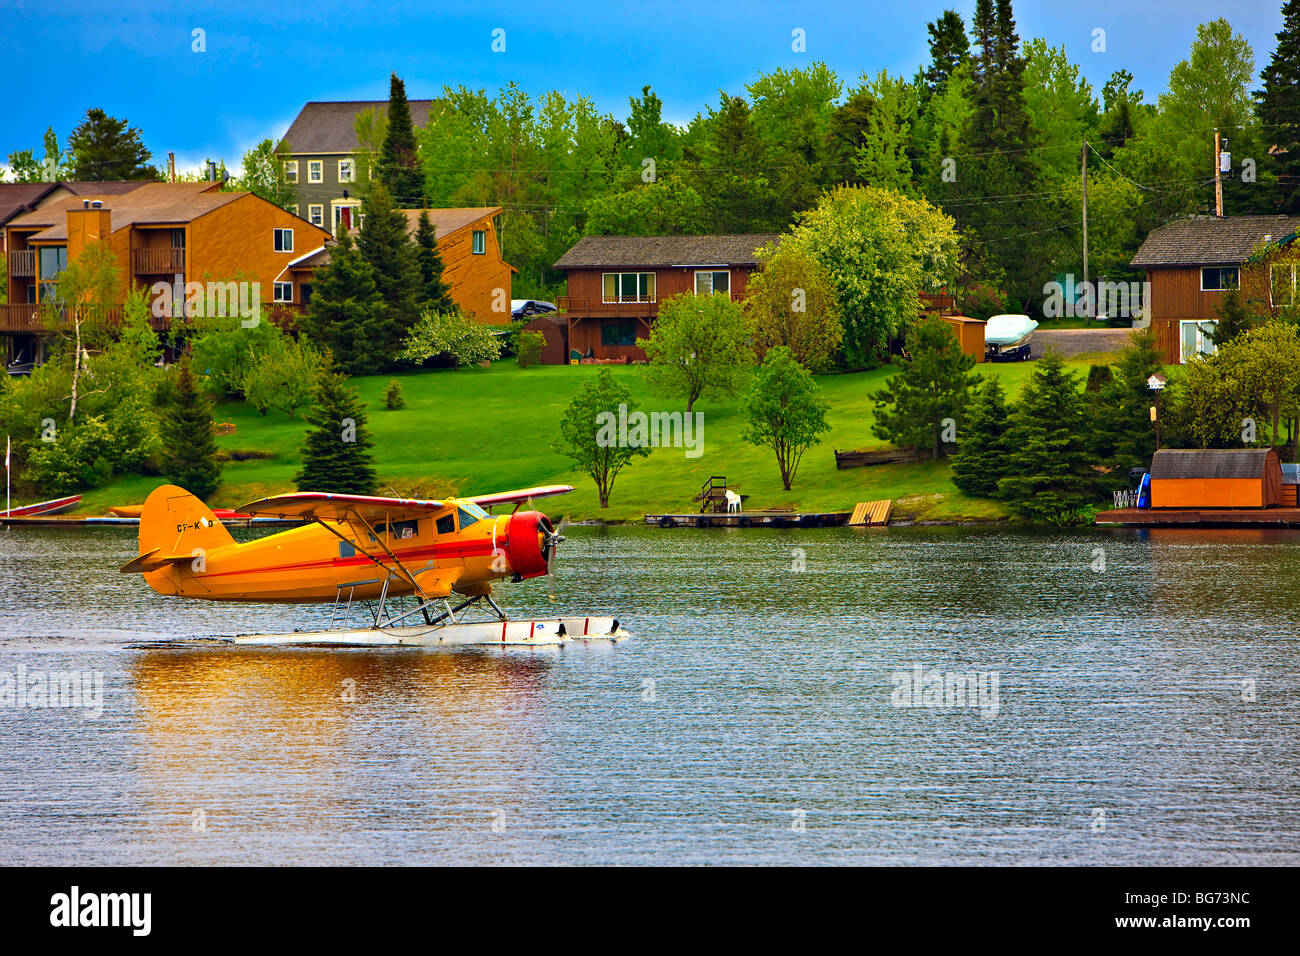 Norseman aircraft taxiing on the water in the town of Red Lake, Ontario, Canada. - Stock Image